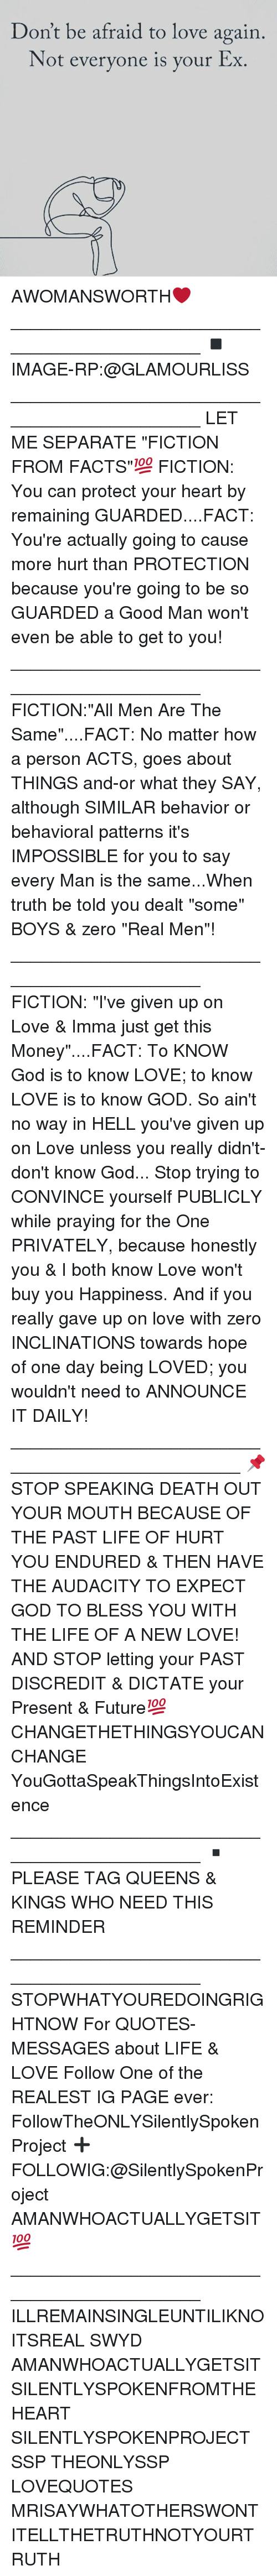 "Facts, Future, and God: Don't be afraid to love again  Not everyone is your Ex. AWOMANSWORTH❤ ____________________________________________ ◾️IMAGE-RP:@GLAMOURLISS ____________________________________________ LET ME SEPARATE ""FICTION FROM FACTS""💯 FICTION: You can protect your heart by remaining GUARDED....FACT: You're actually going to cause more hurt than PROTECTION because you're going to be so GUARDED a Good Man won't even be able to get to you! ____________________________________________ FICTION:""All Men Are The Same""....FACT: No matter how a person ACTS, goes about THINGS and-or what they SAY, although SIMILAR behavior or behavioral patterns it's IMPOSSIBLE for you to say every Man is the same...When truth be told you dealt ""some"" BOYS & zero ""Real Men""! ____________________________________________ FICTION: ""I've given up on Love & Imma just get this Money""....FACT: To KNOW God is to know LOVE; to know LOVE is to know GOD. So ain't no way in HELL you've given up on Love unless you really didn't-don't know God... Stop trying to CONVINCE yourself PUBLICLY while praying for the One PRIVATELY, because honestly you & I both know Love won't buy you Happiness. And if you really gave up on love with zero INCLINATIONS towards hope of one day being LOVED; you wouldn't need to ANNOUNCE IT DAILY! ________________________________________________ 📌STOP SPEAKING DEATH OUT YOUR MOUTH BECAUSE OF THE PAST LIFE OF HURT YOU ENDURED & THEN HAVE THE AUDACITY TO EXPECT GOD TO BLESS YOU WITH THE LIFE OF A NEW LOVE! AND STOP letting your PAST DISCREDIT & DICTATE your Present & Future💯 CHANGETHETHINGSYOUCANCHANGE YouGottaSpeakThingsIntoExistence ____________________________________________ ▪️PLEASE TAG QUEENS & KINGS WHO NEED THIS REMINDER ____________________________________________ STOPWHATYOUREDOINGRIGHTNOW For QUOTES-MESSAGES about LIFE & LOVE Follow One of the REALEST IG PAGE ever: FollowTheONLYSilentlySpokenProject ➕FOLLOWIG:@SilentlySpokenProject AMANWHOACTUALLYGETSIT💯 ____________________________________________ ILLREMAINSINGLEUNTILIKNOITSREAL SWYD AMANWHOACTUALLYGETSIT SILENTLYSPOKENFROMTHEHEART SILENTLYSPOKENPROJECT SSP THEONLYSSP LOVEQUOTES MRISAYWHATOTHERSWONT ITELLTHETRUTHNOTYOURTRUTH"